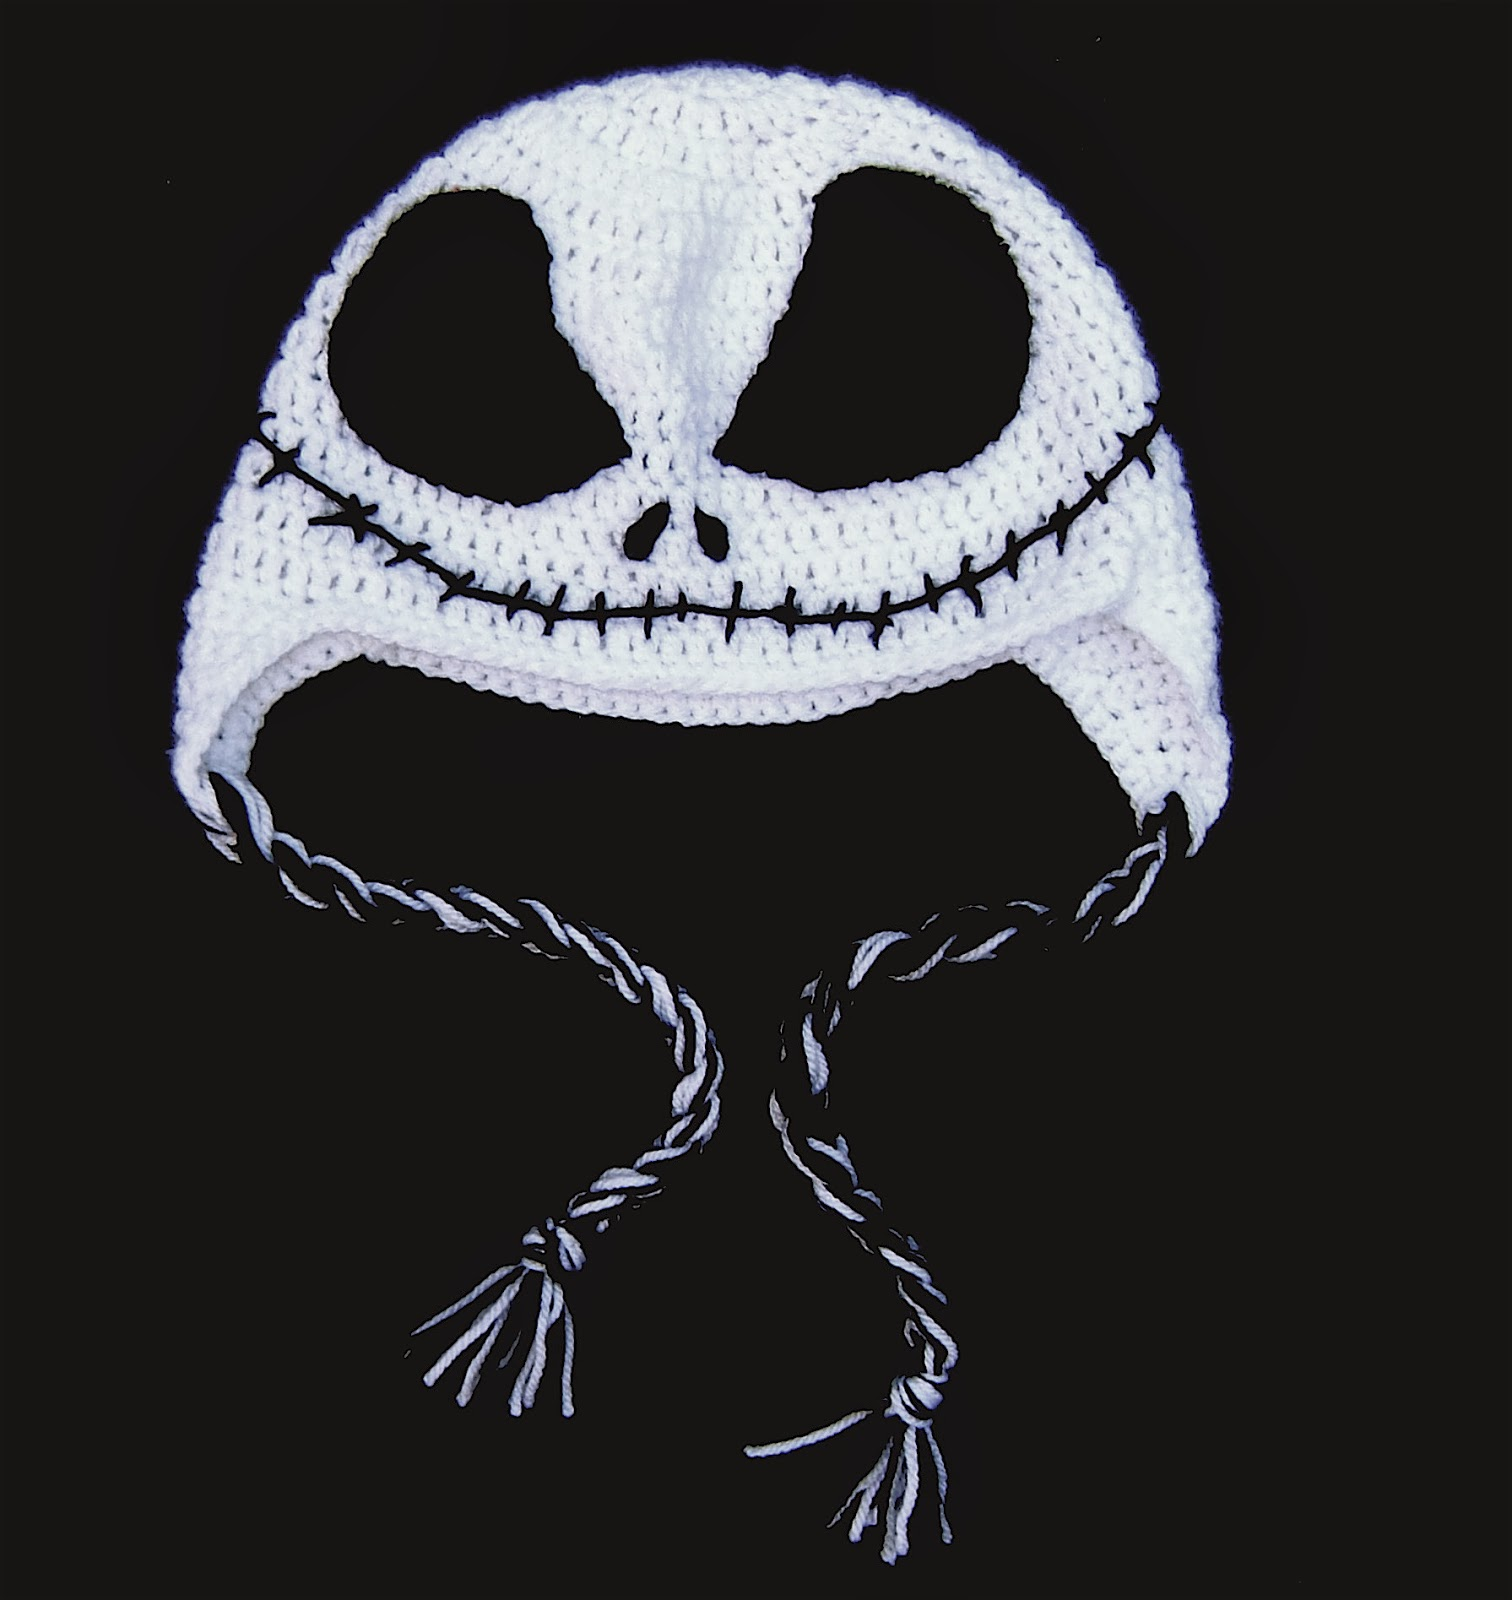 Crochet Pattern For Jack Skellington Hat : Kitschnclocks: September 2013